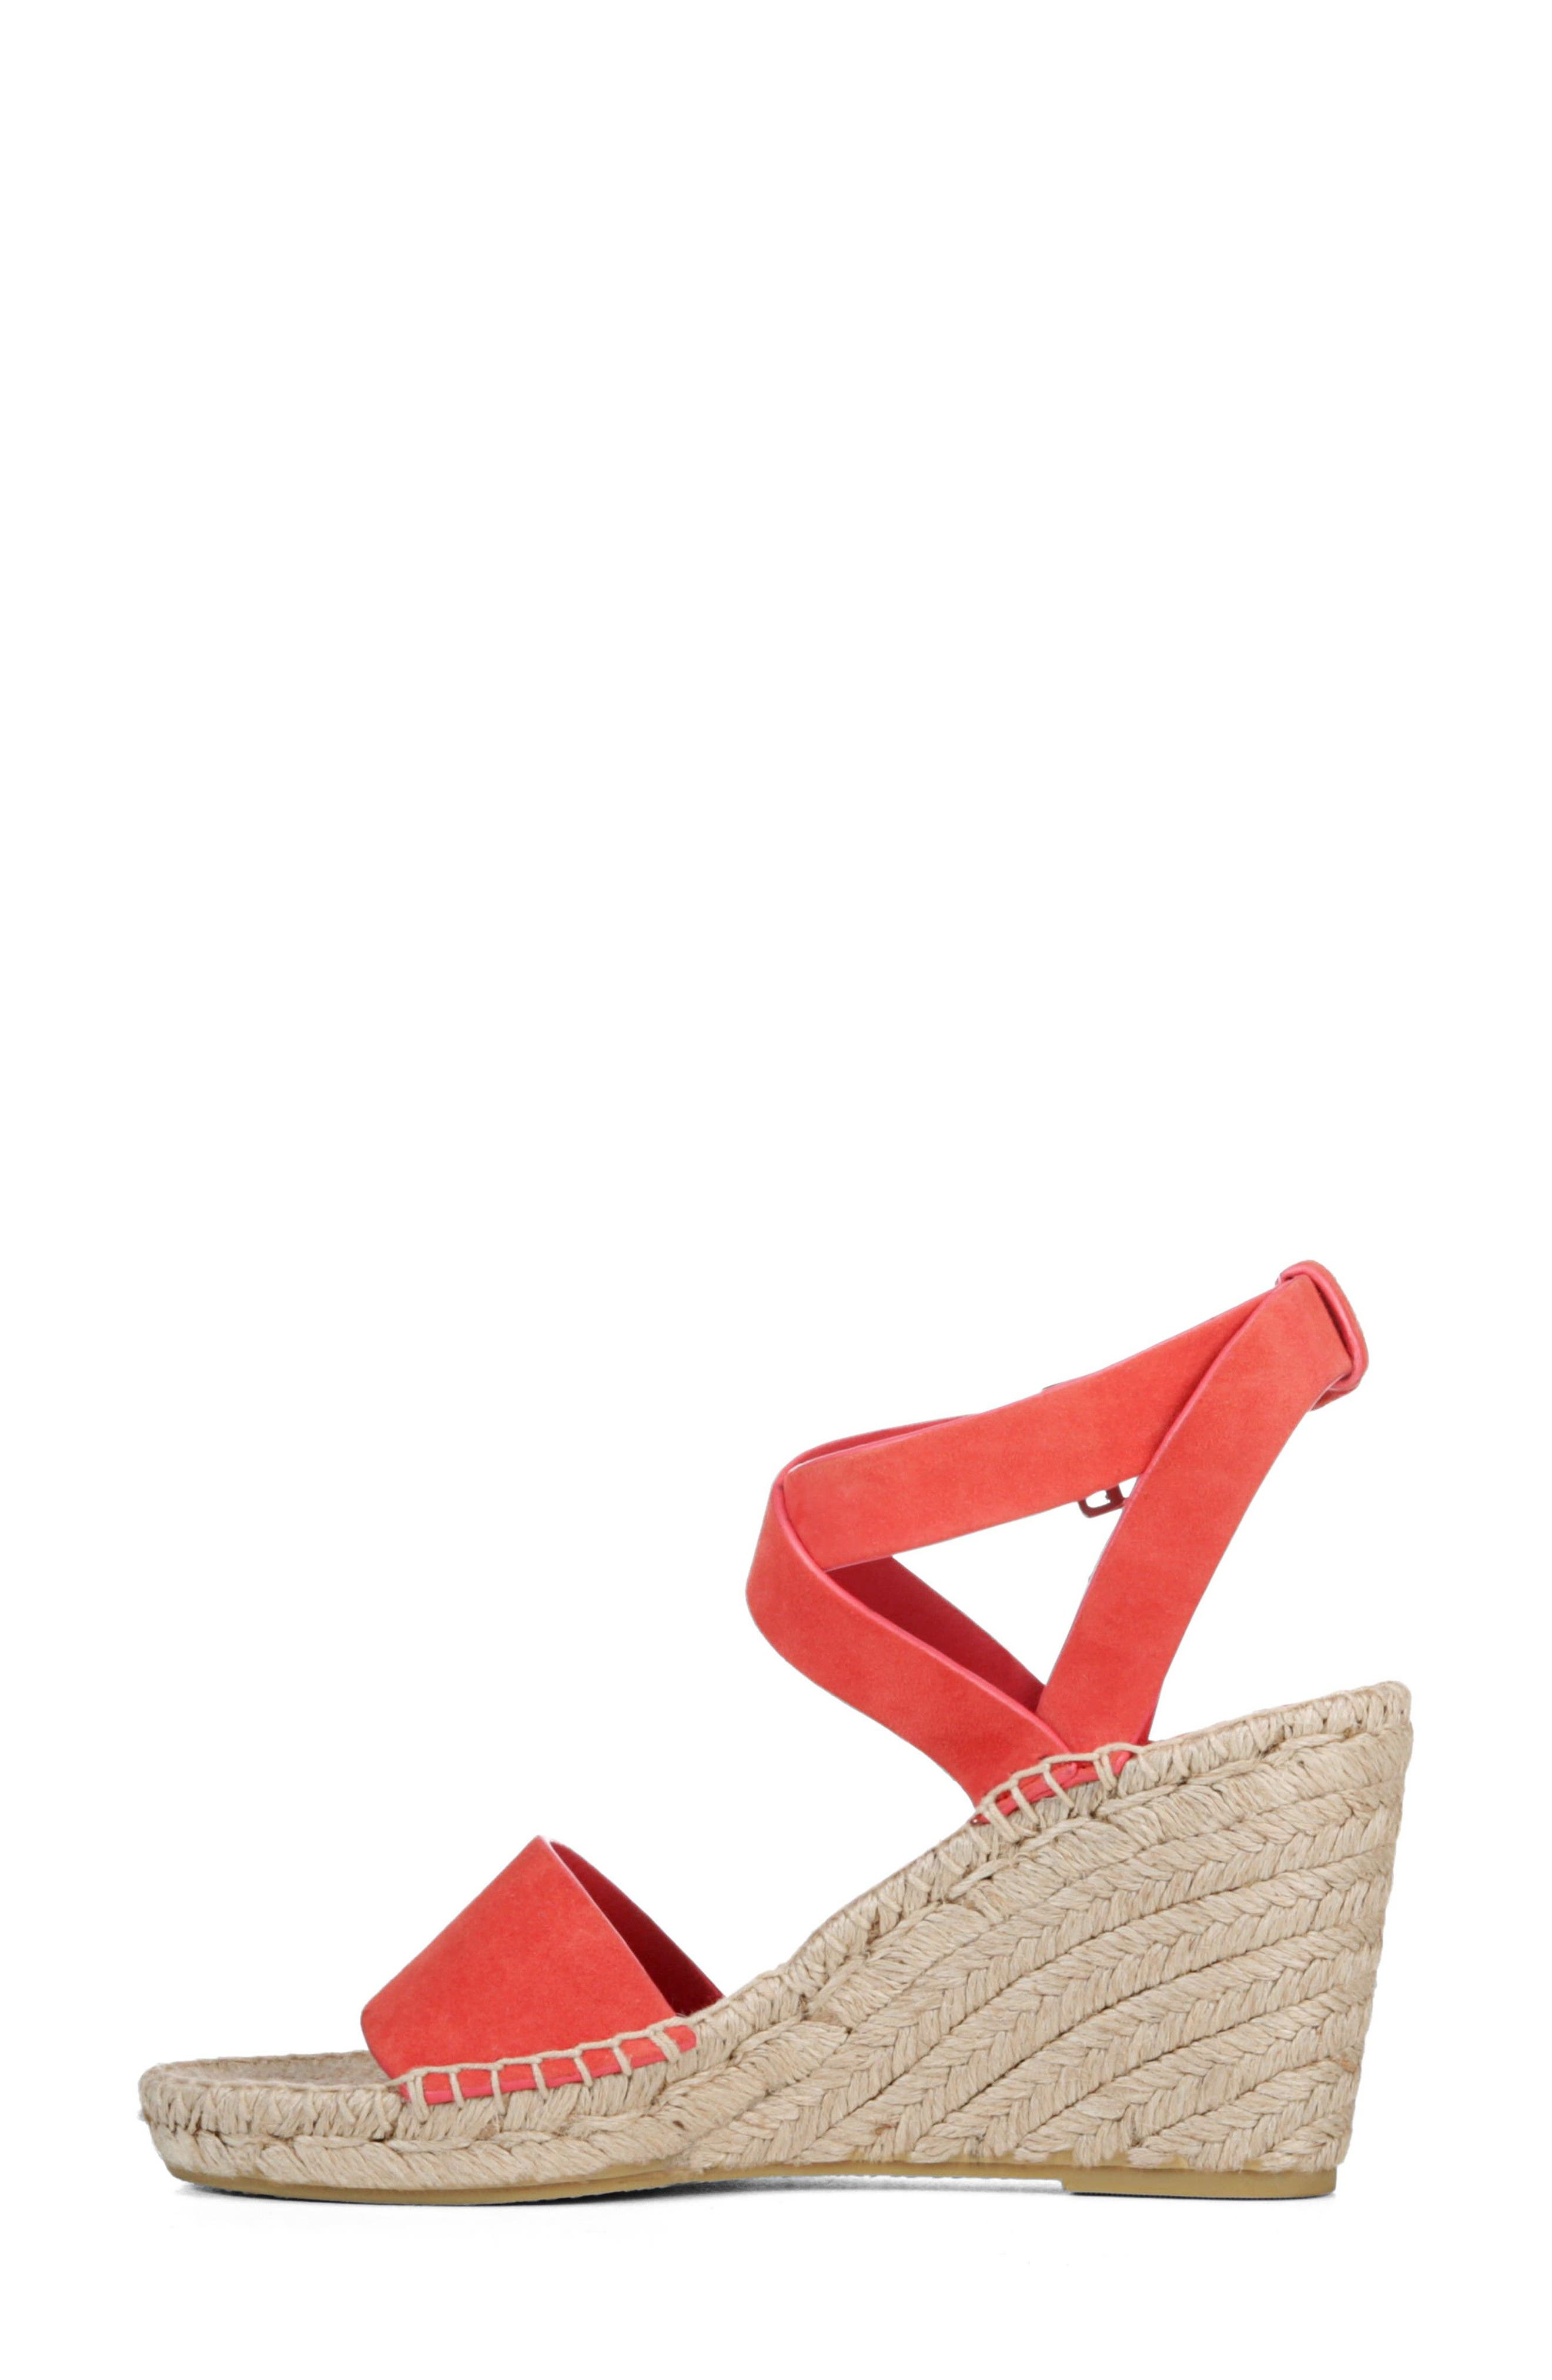 Nevada Espadrille Wedge Sandal,                             Alternate thumbnail 3, color,                             Poppy Red Suede